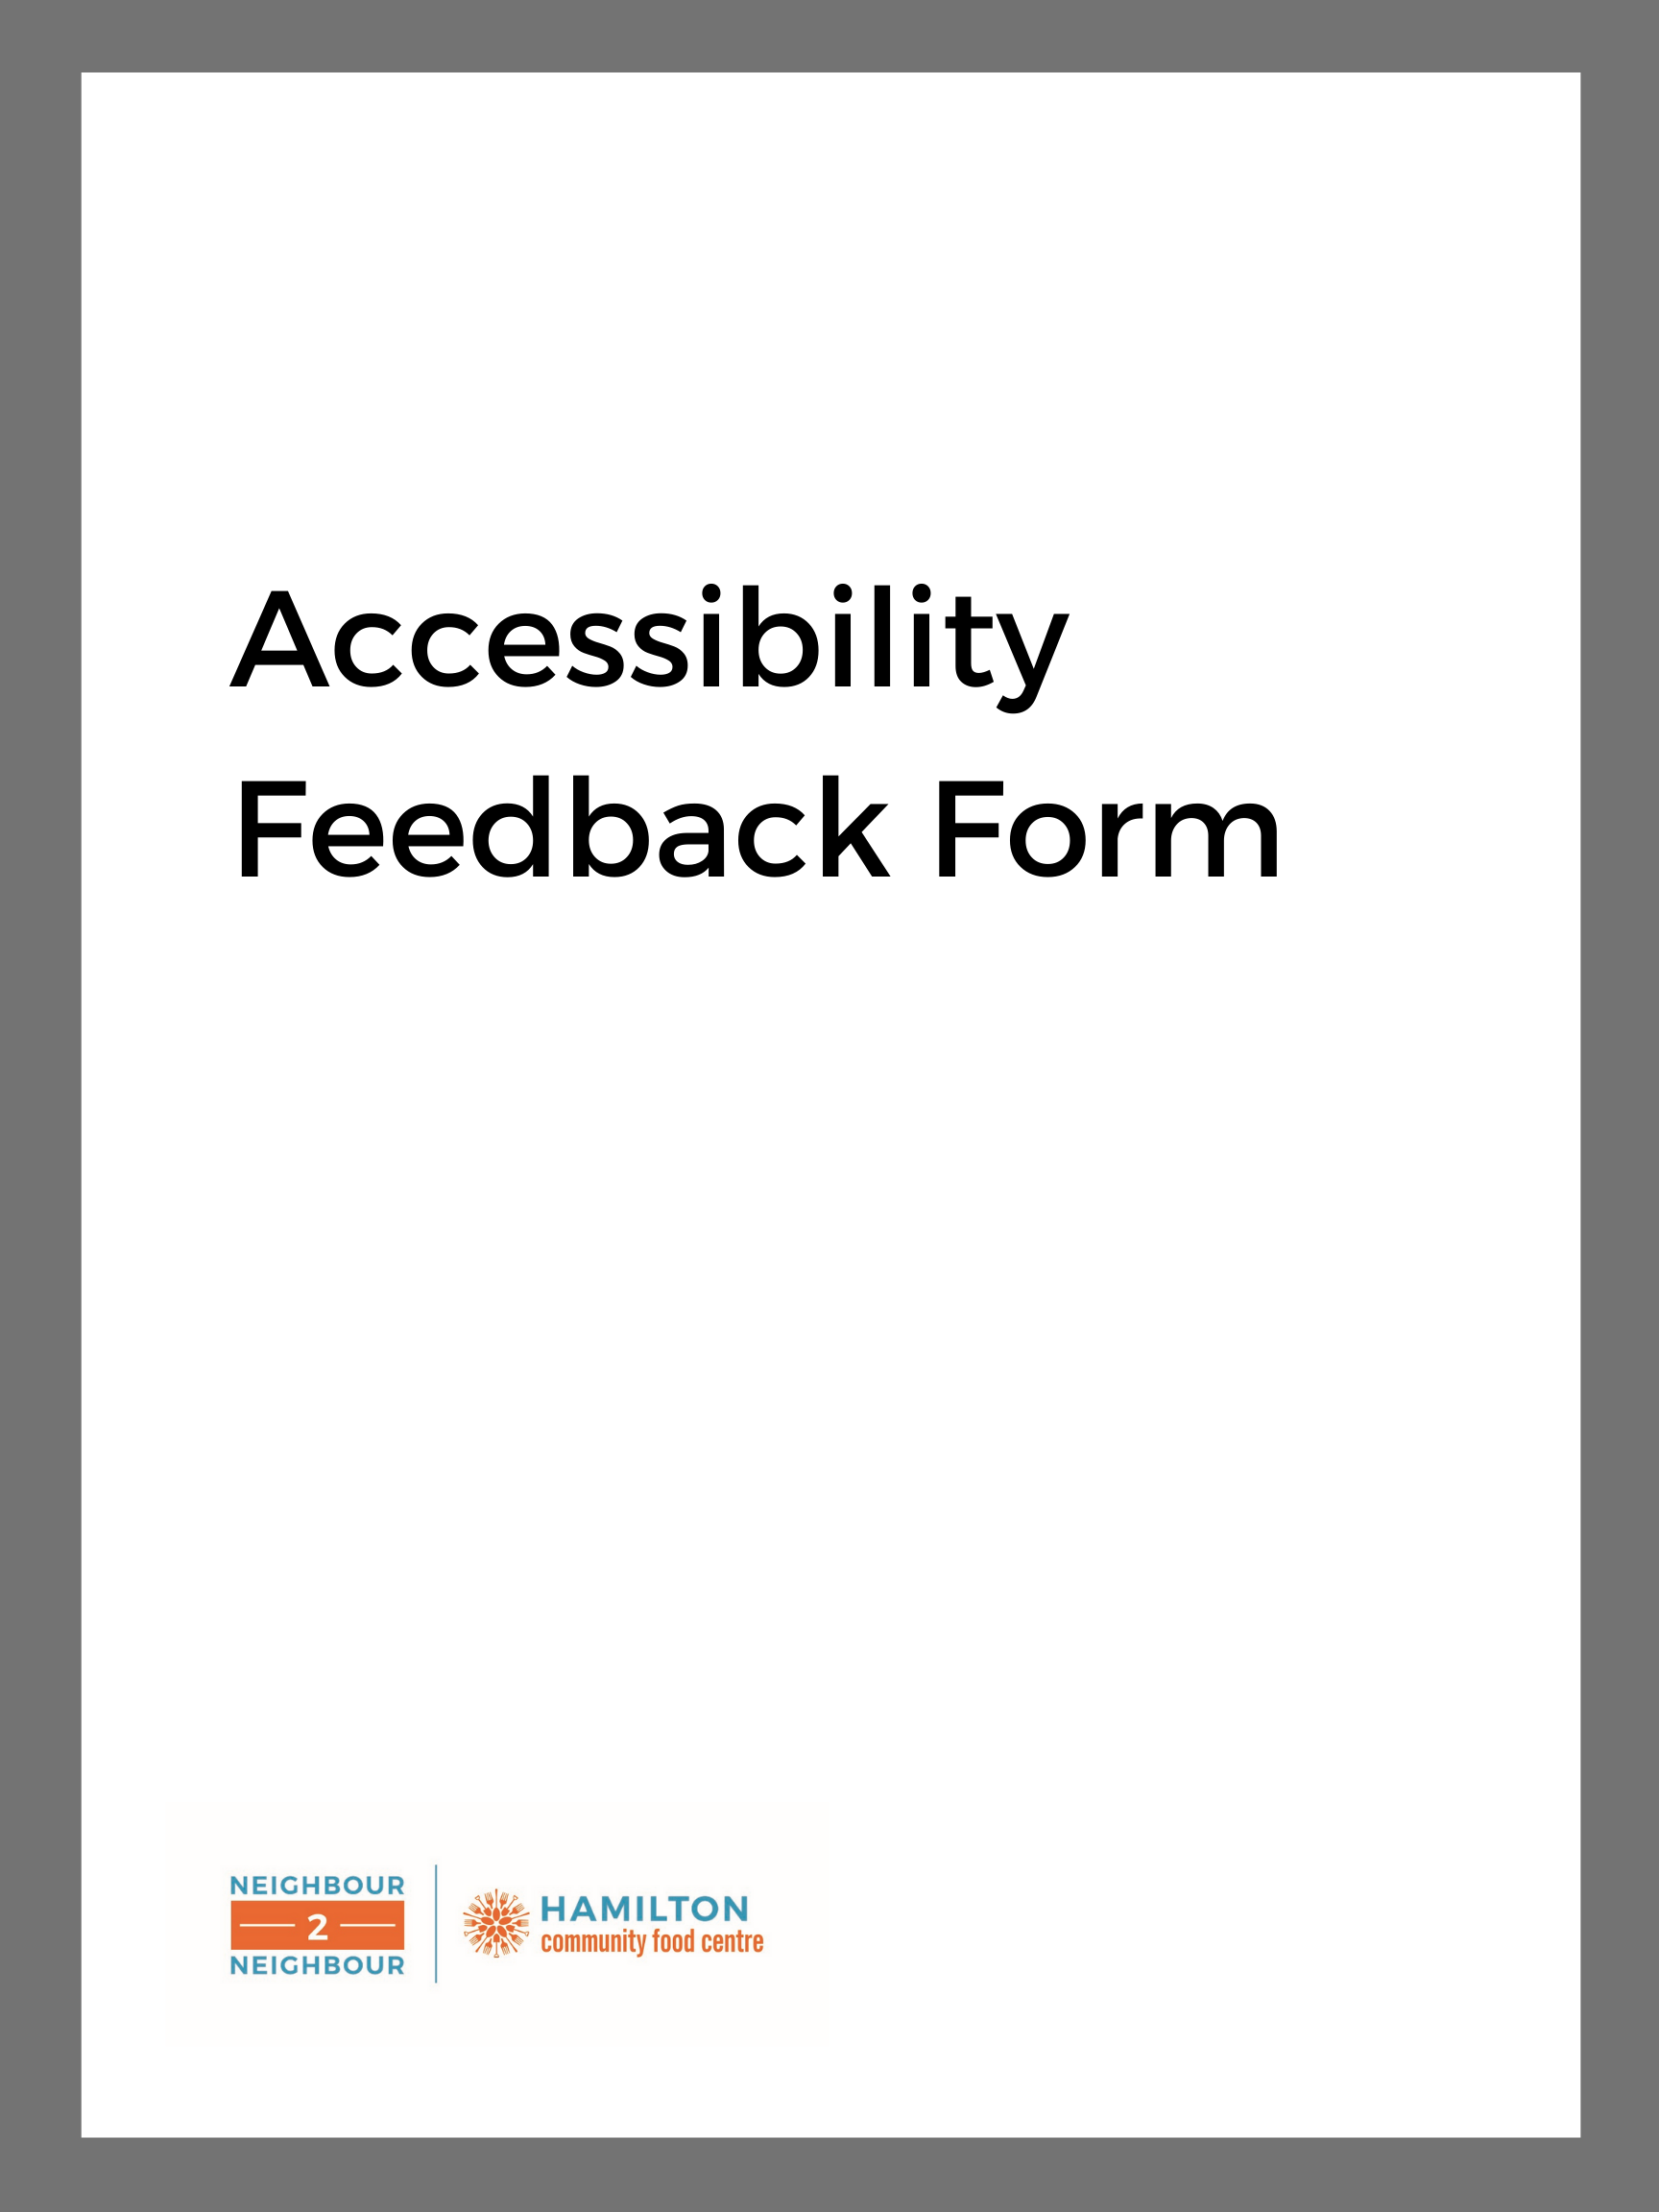 image of: Accessibility Feedback Form